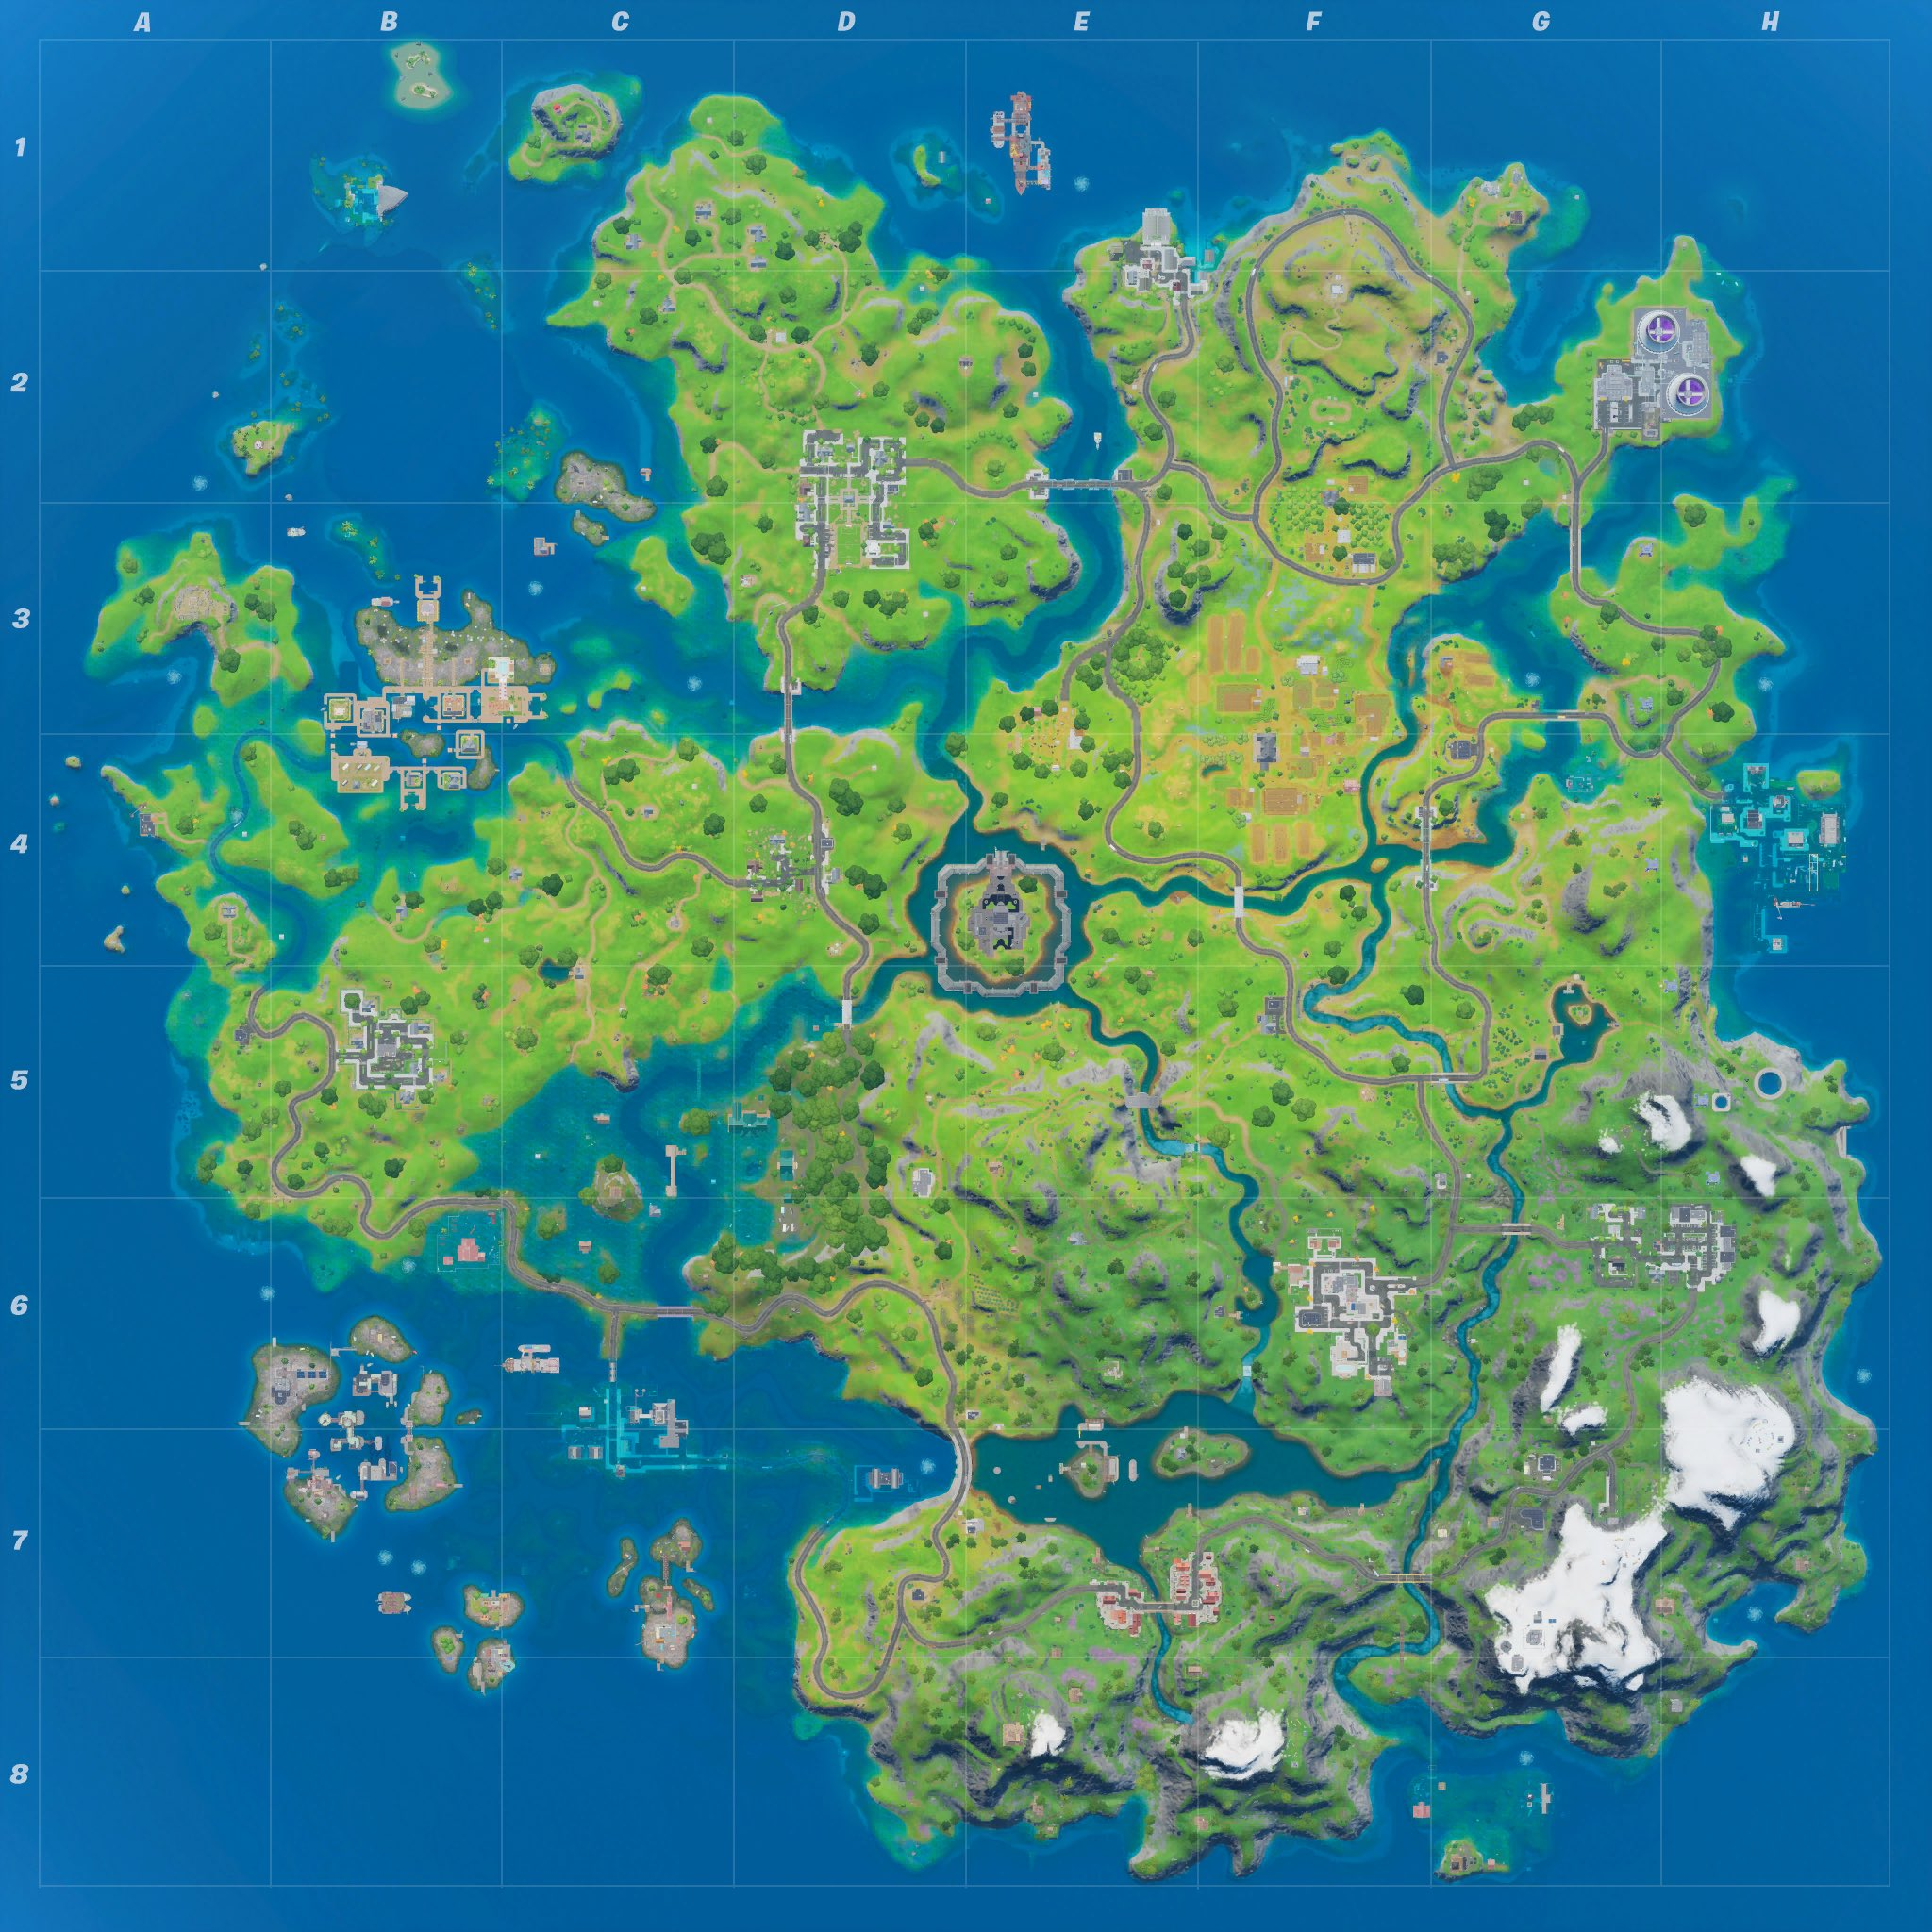 A screenshot of the Fortnite map.